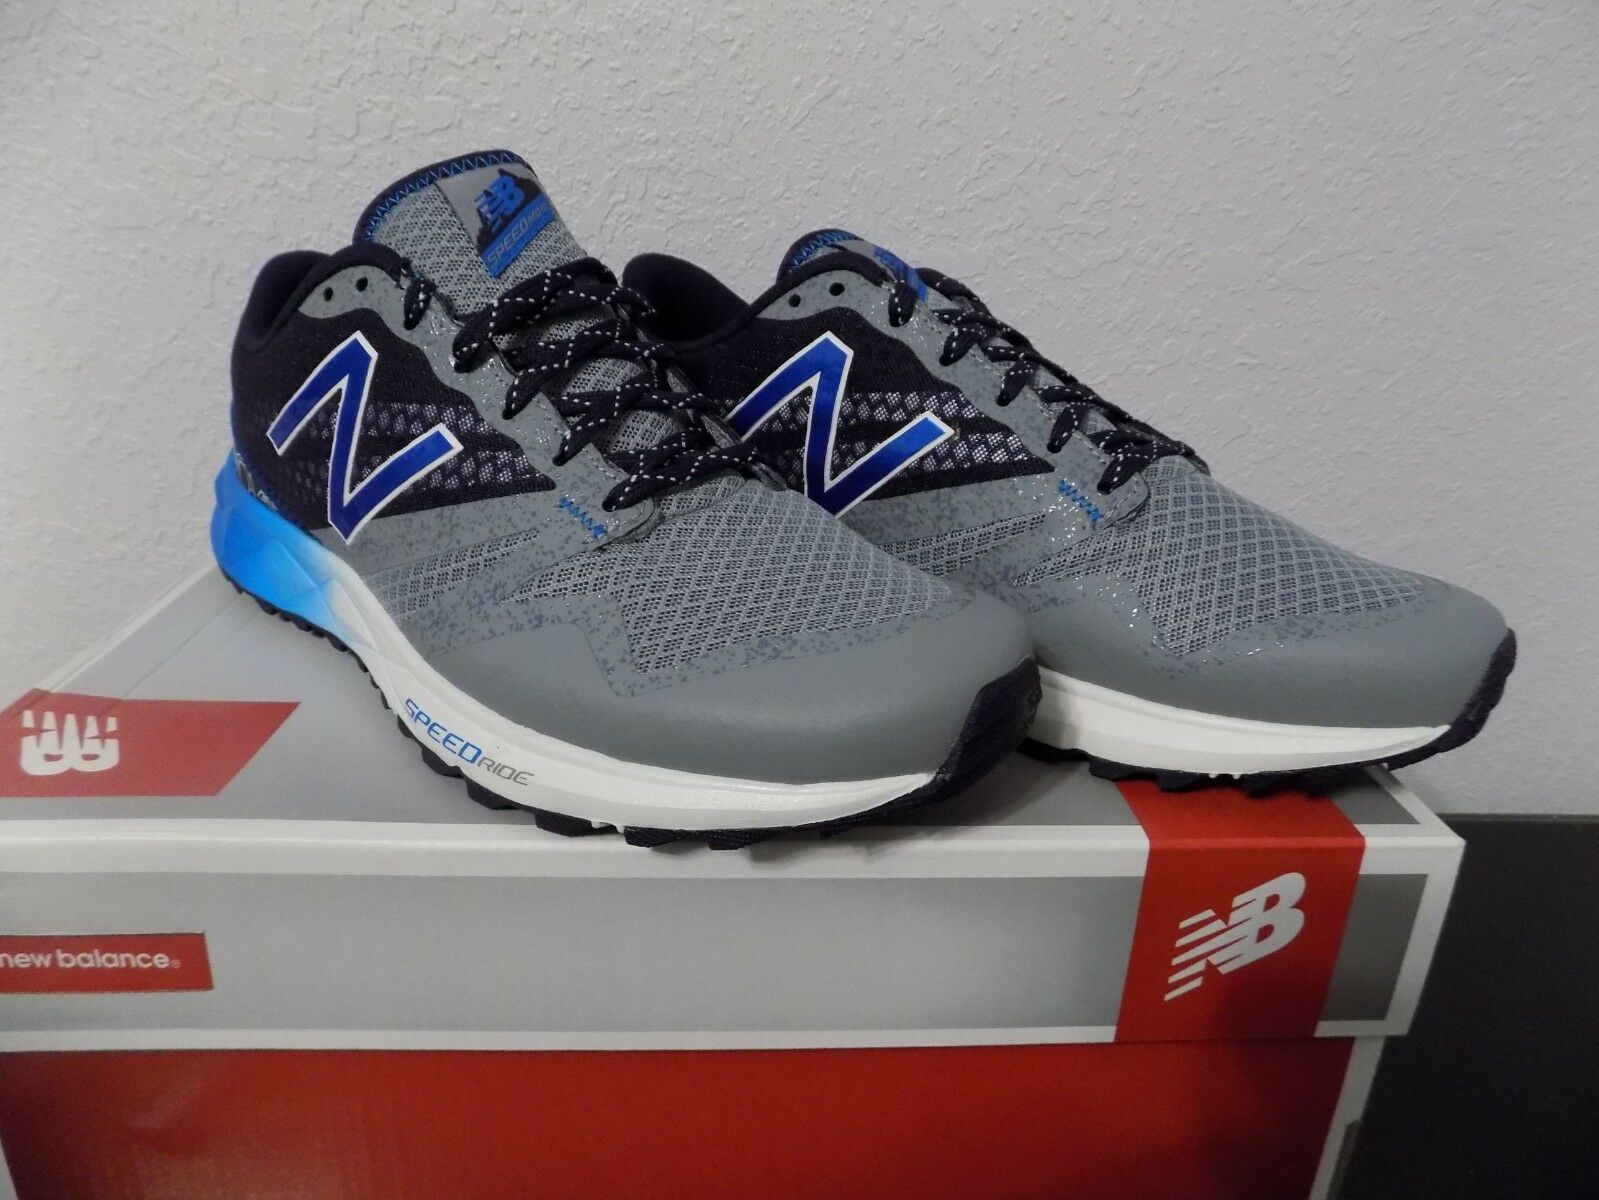 NEW BALANCE 690 SERIES GREY MT690RG1 RUNNING MEN SHOES Sz 9 Med NIB